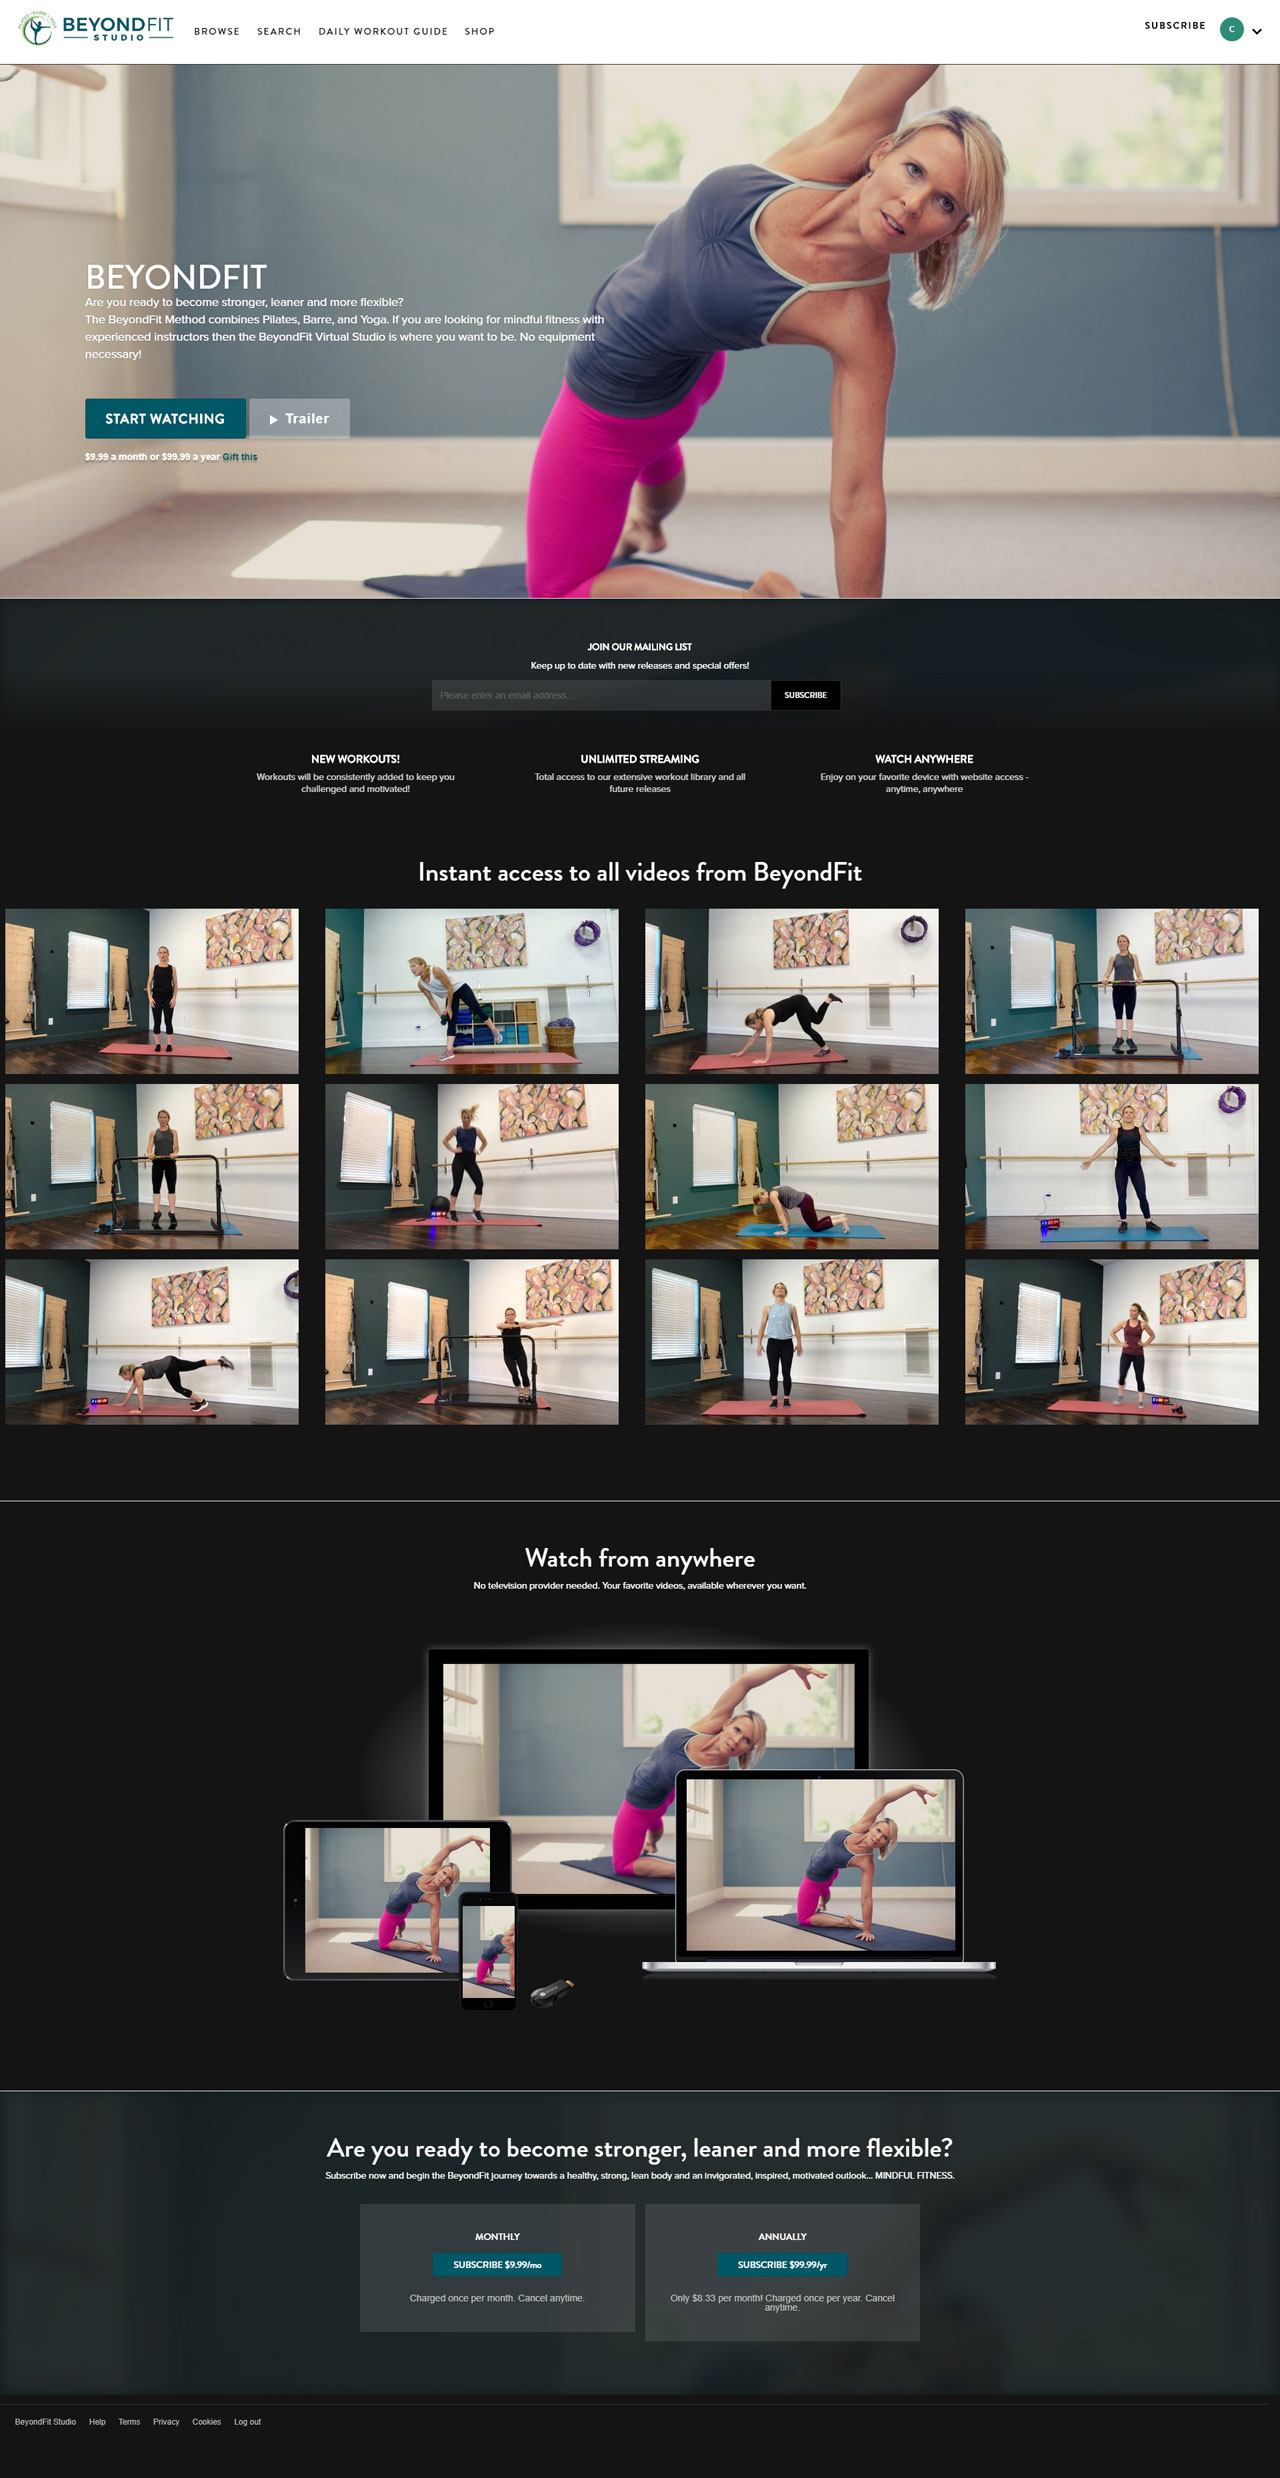 beyond-fit-virtual-studio-home